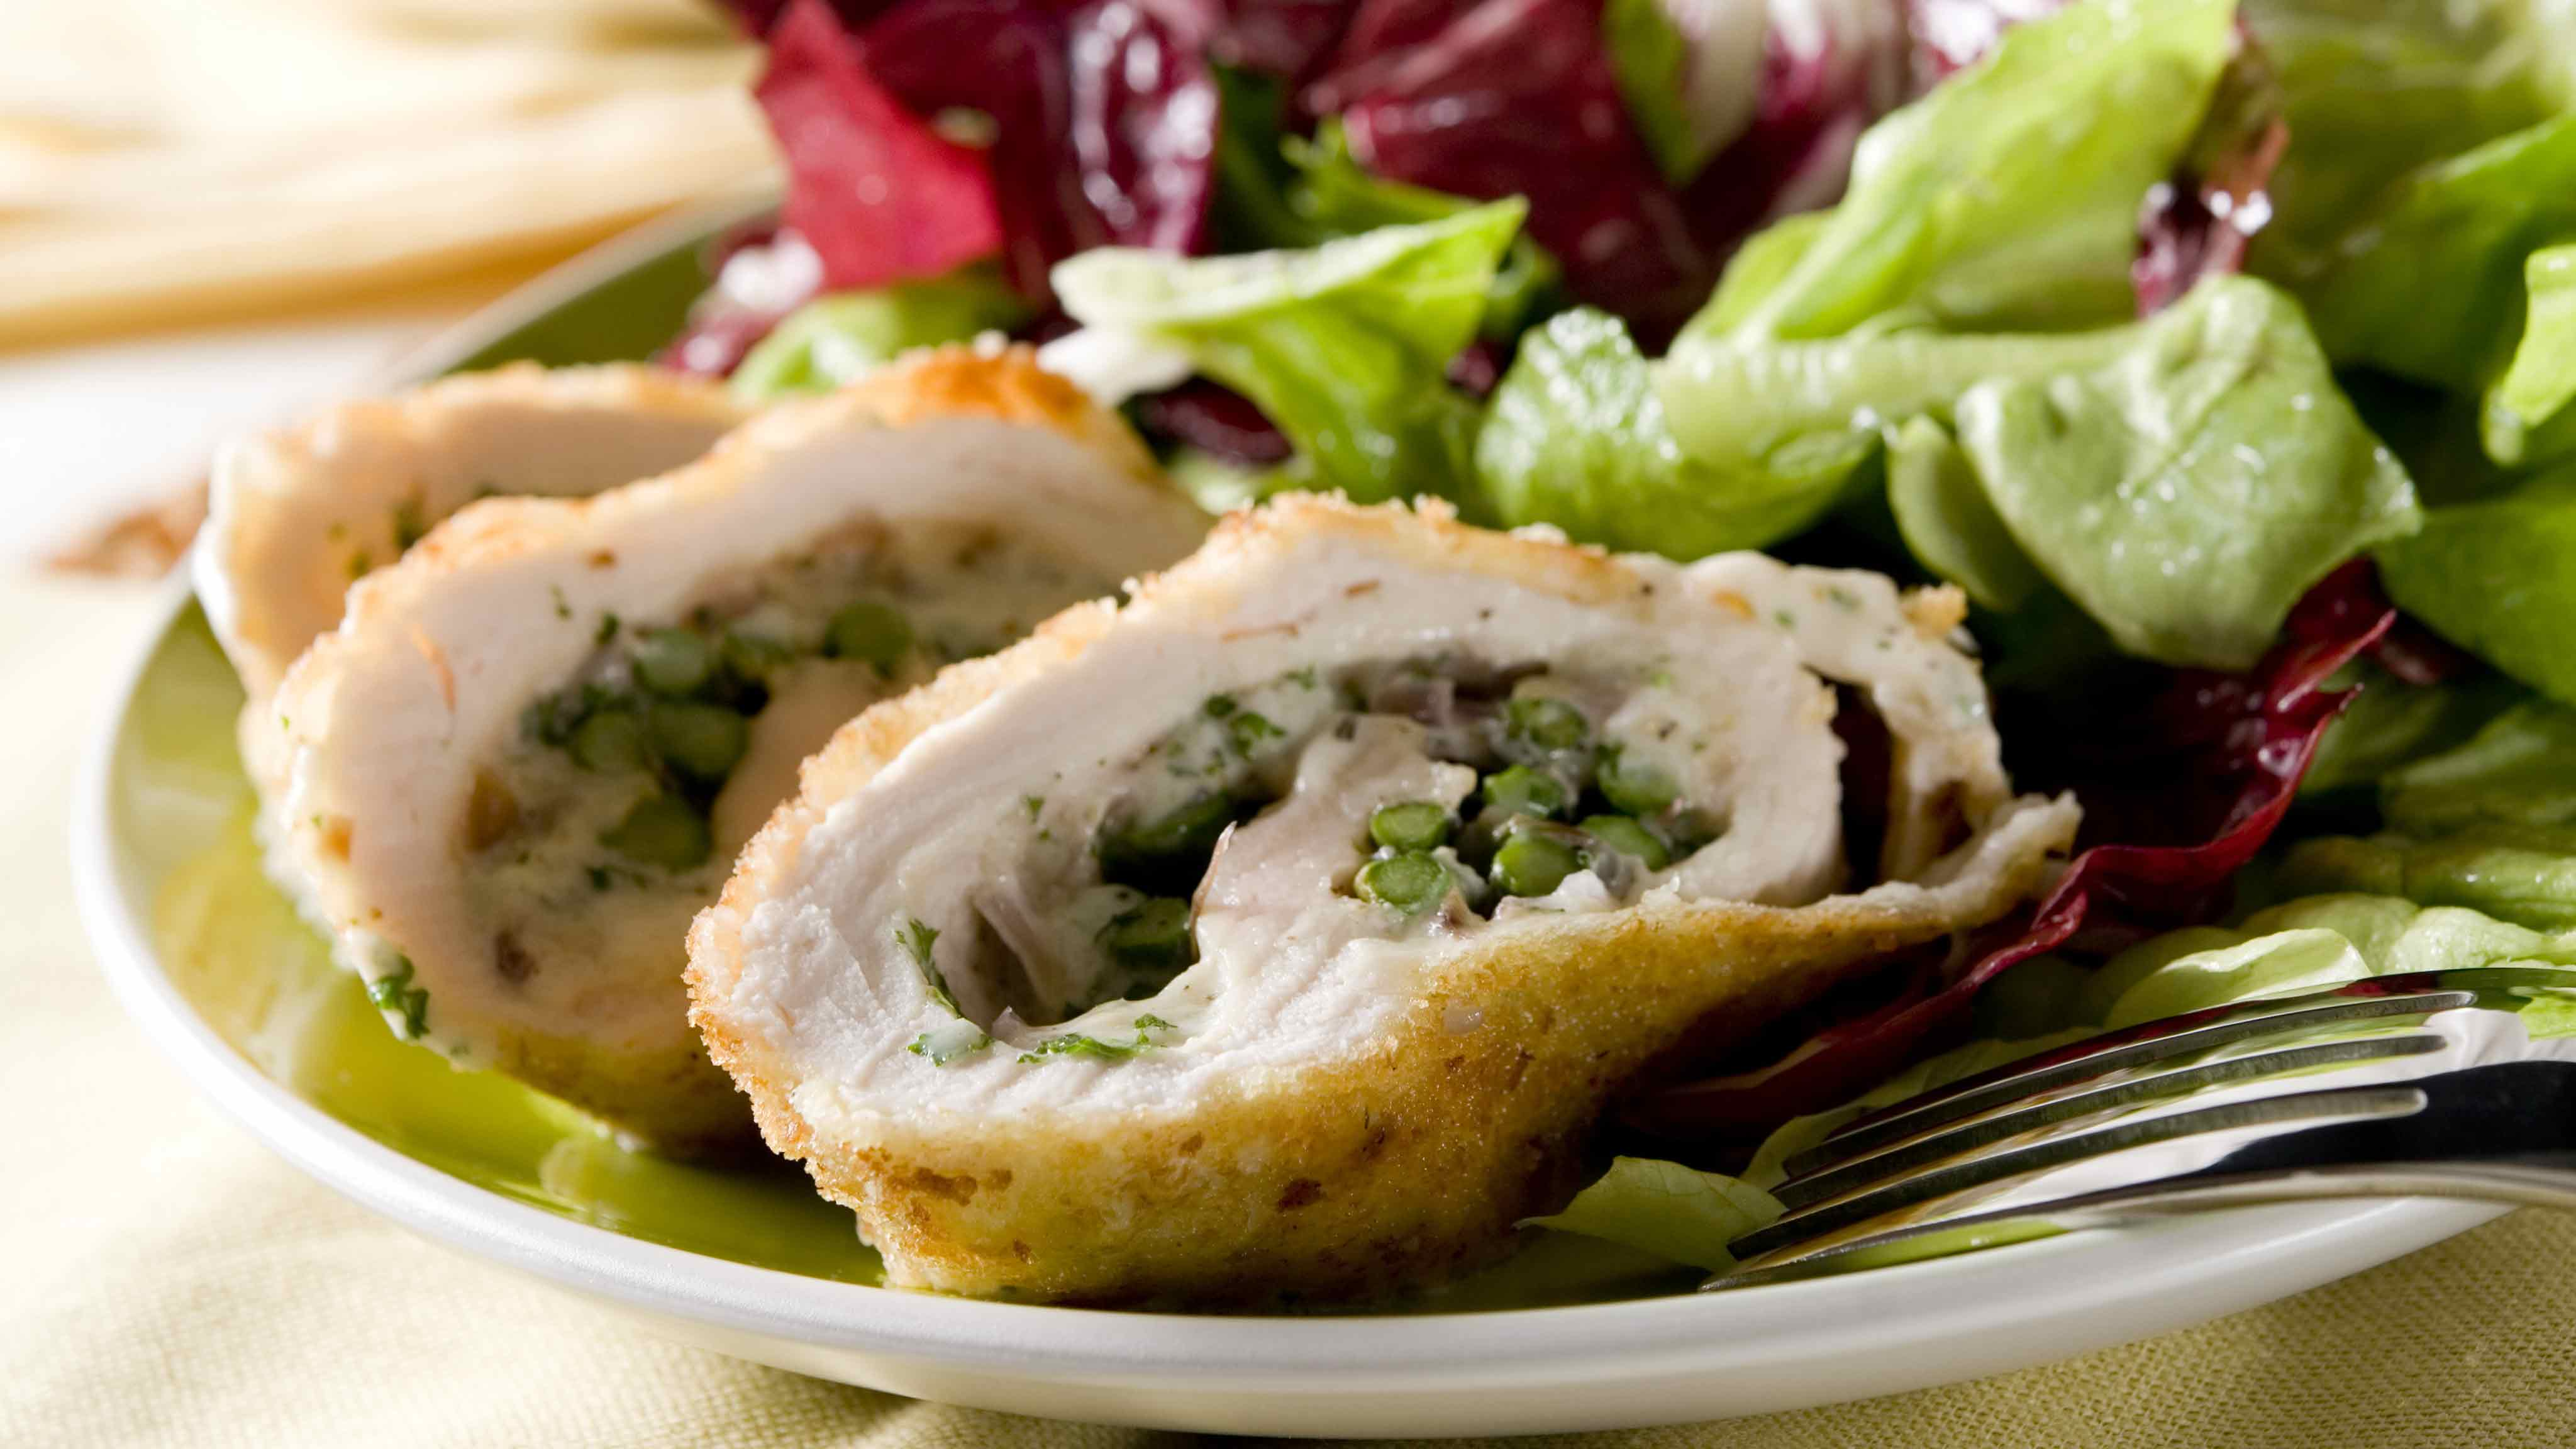 Image for Recipe Asparagus and Cheese Stuffed Chicken Breast